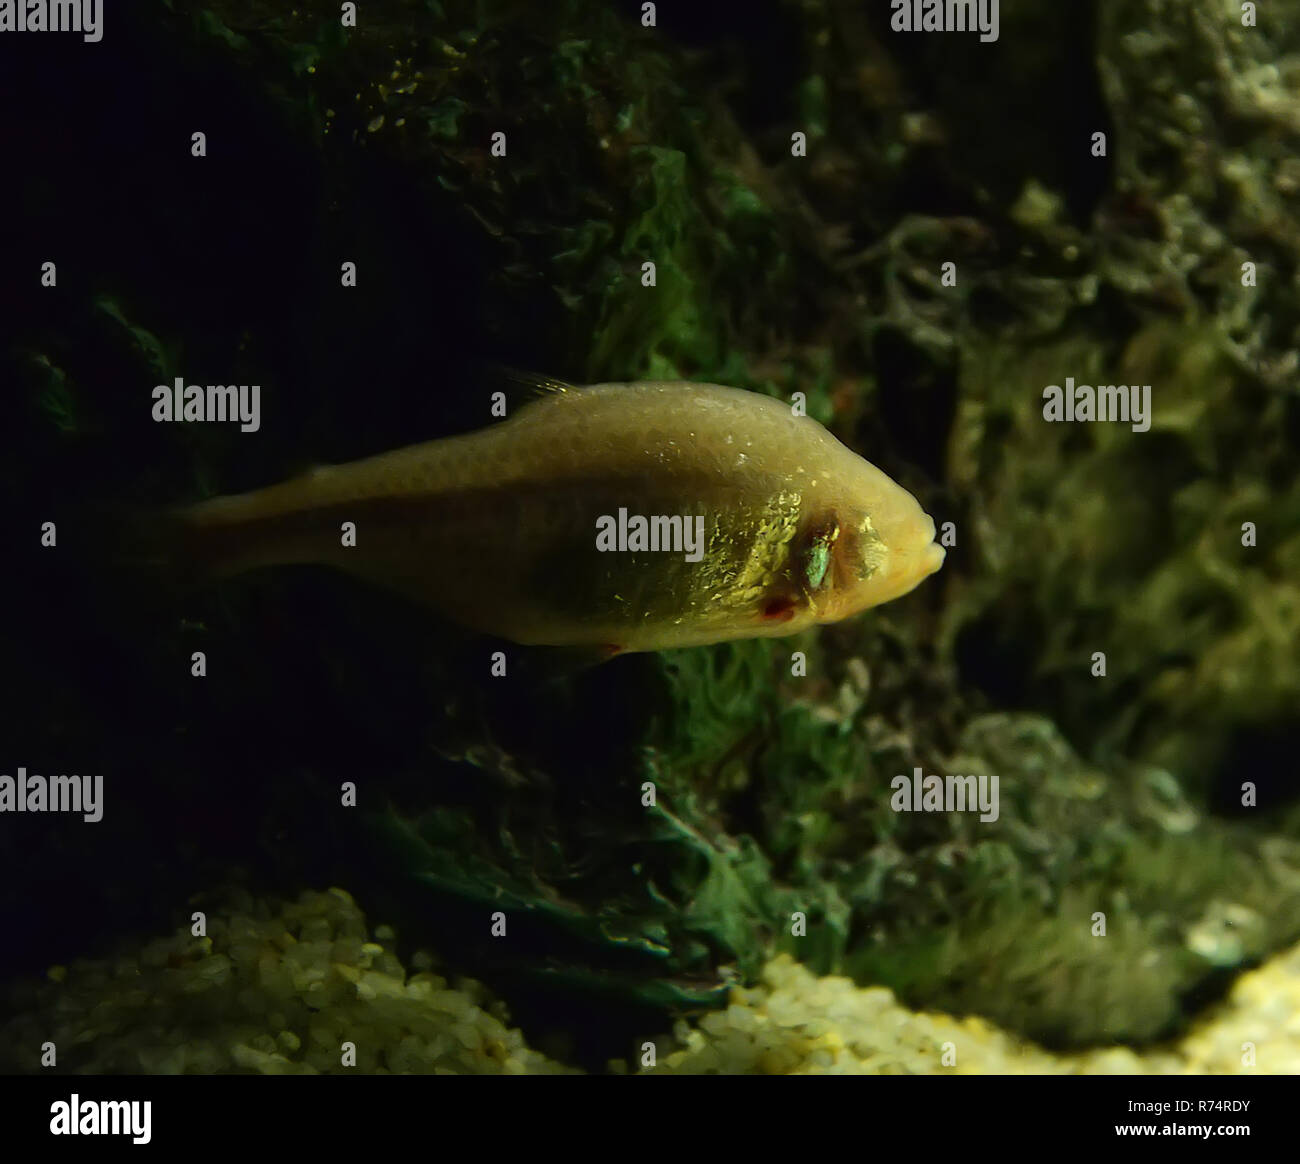 Cave fish / blind bave fish or mexican tetra swimming in cave underwater (Astyanax fasciatus mexicanus) - Stock Image